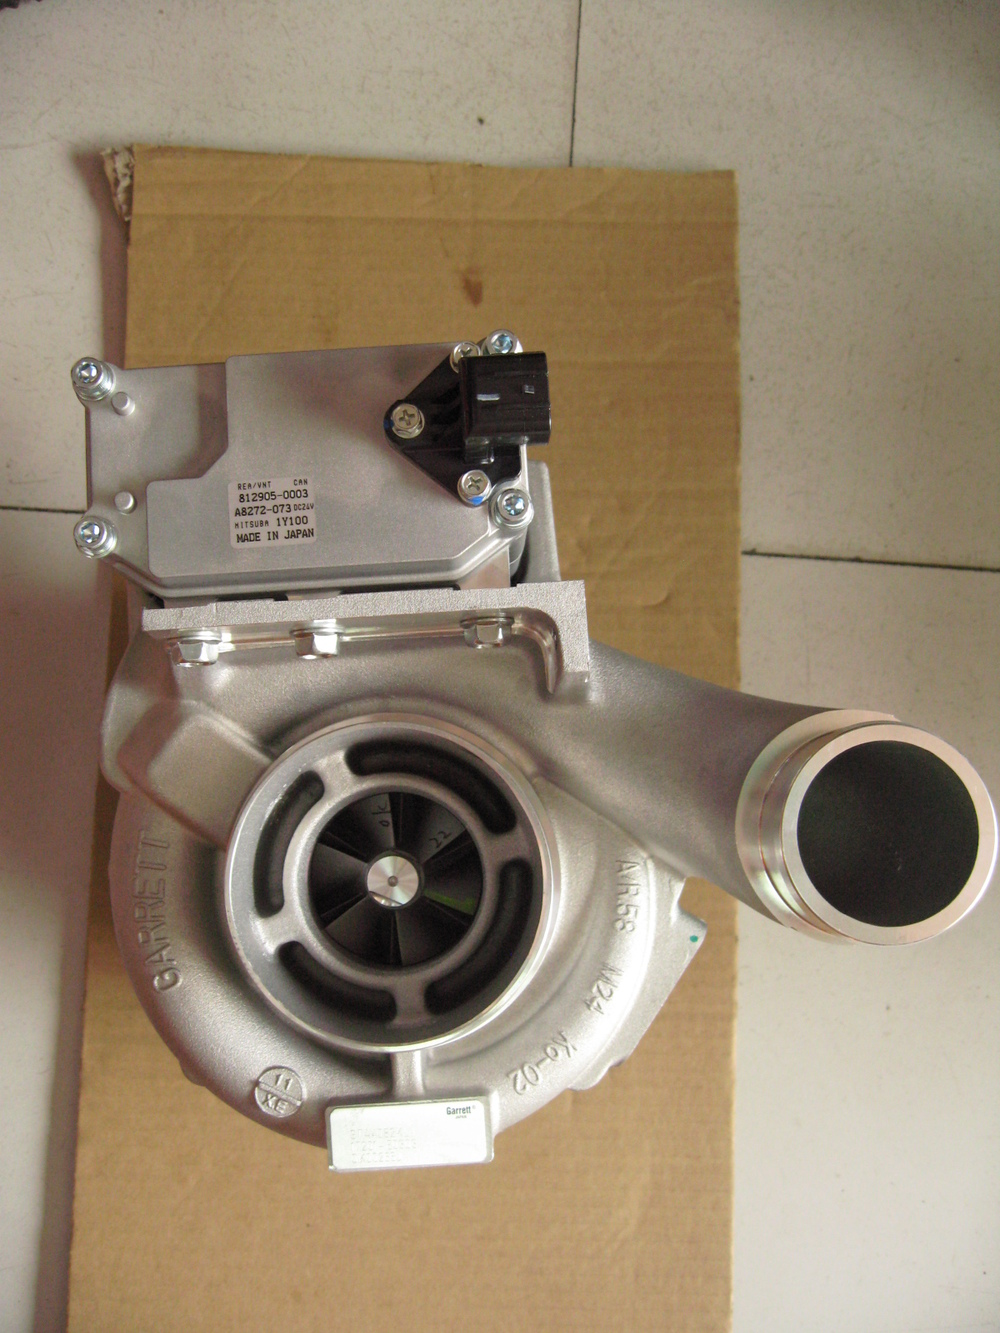 17201-E0303 TO4B27 excavator turbocharger for sale